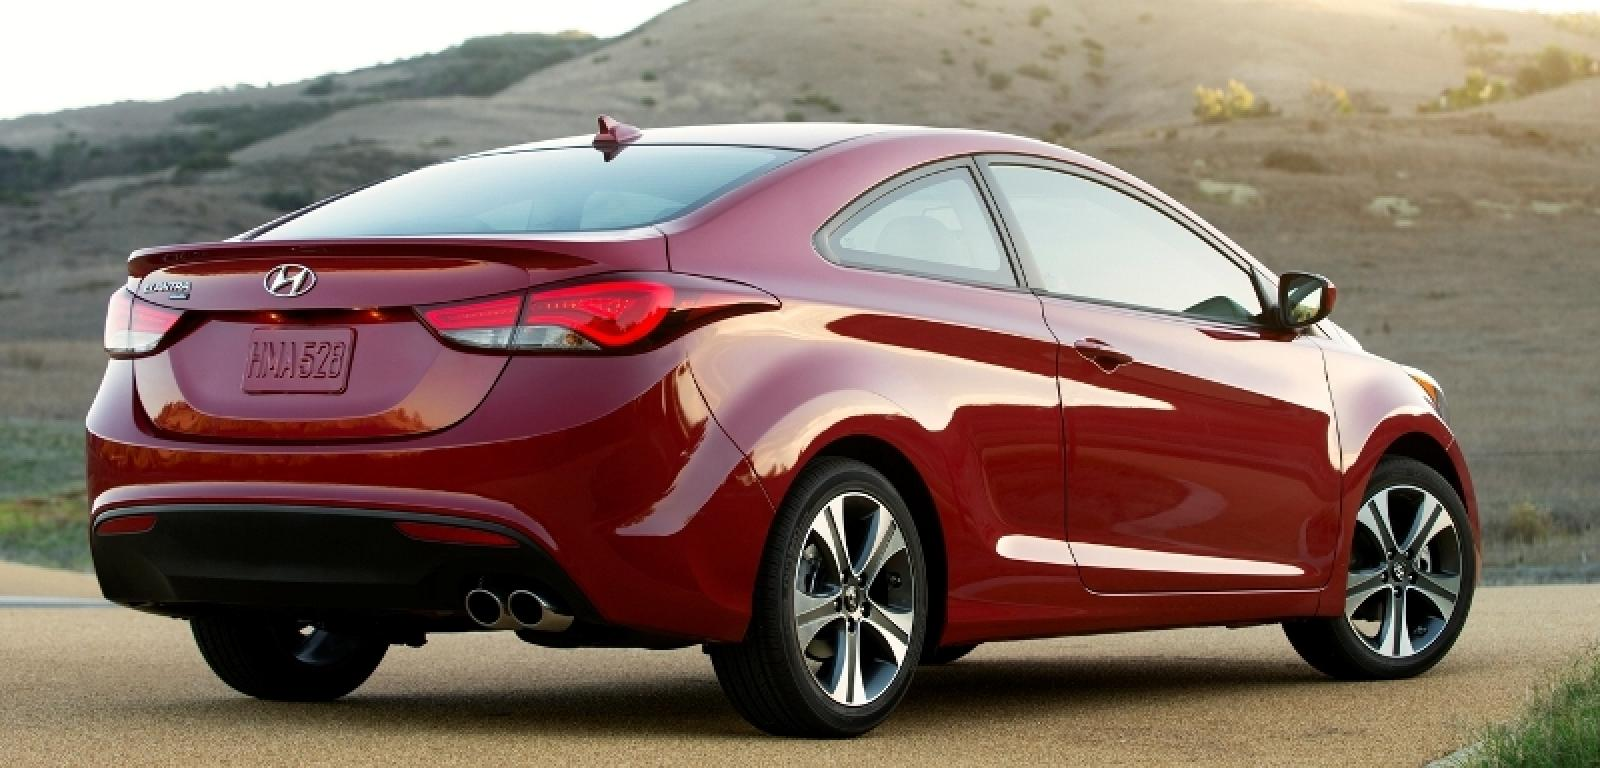 2014 hyundai elantra coupe information and photos zombiedrive. Black Bedroom Furniture Sets. Home Design Ideas